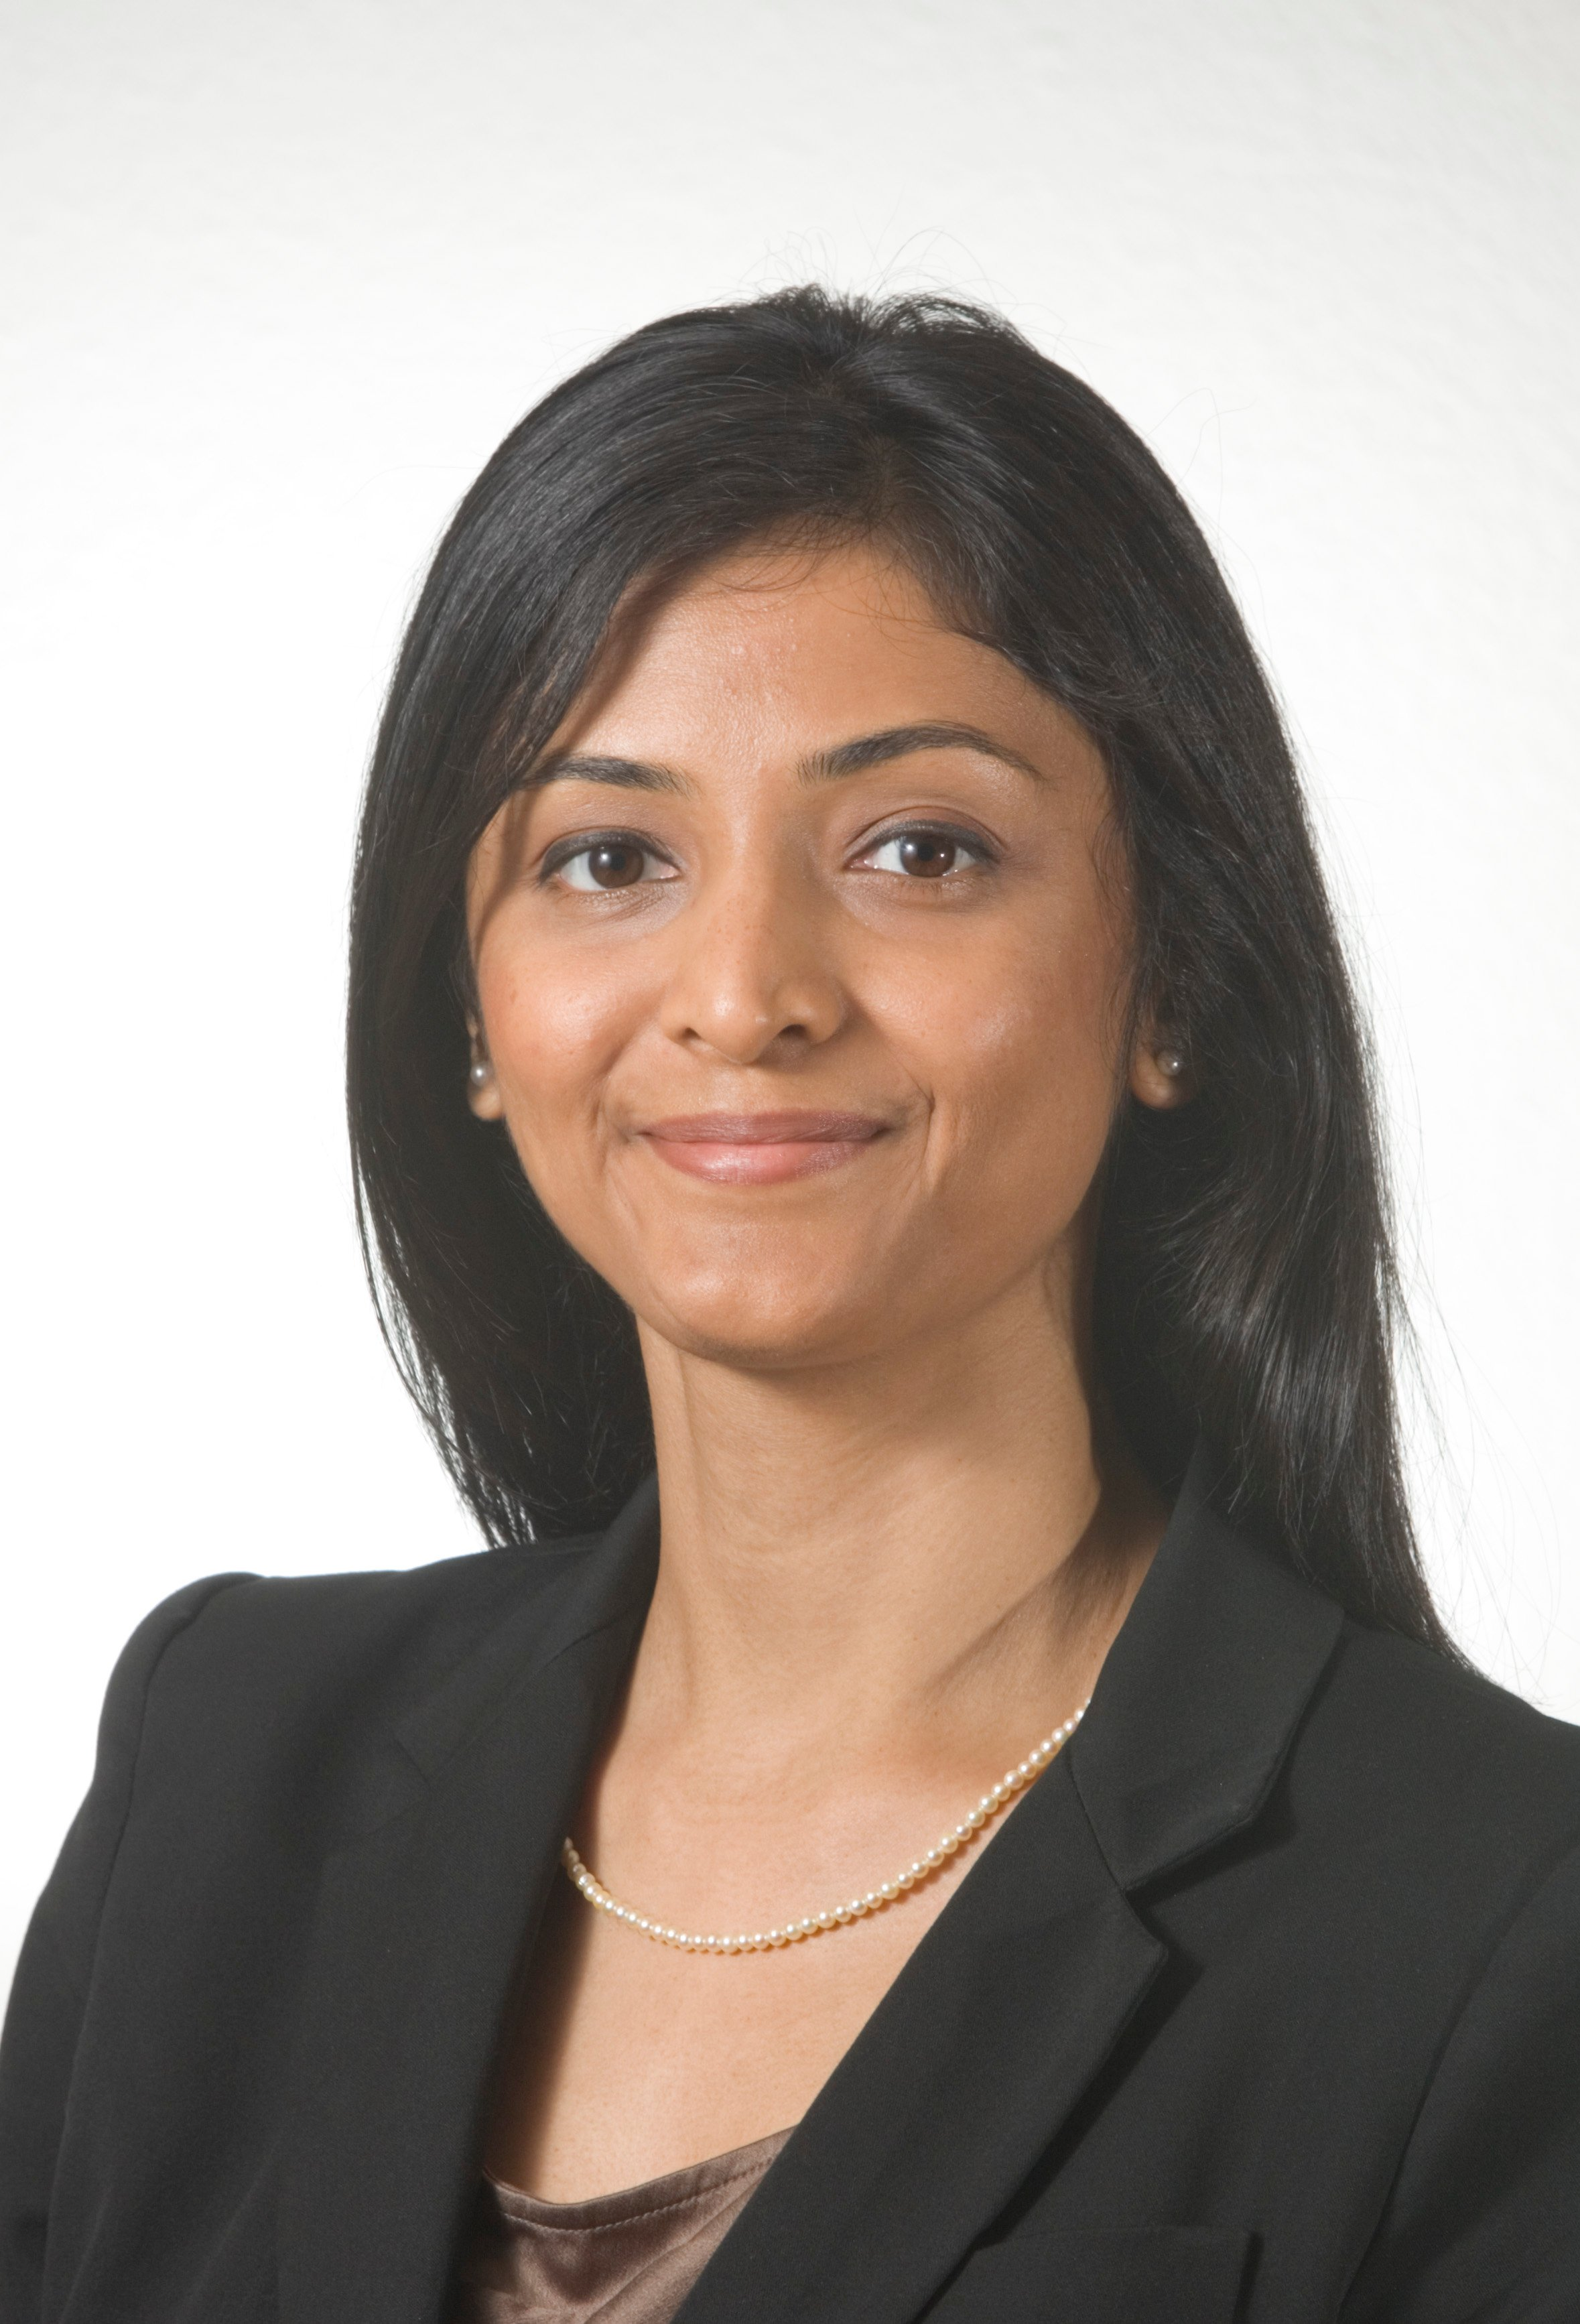 Bindiya Vakil, CEO and Founder of Resilinc